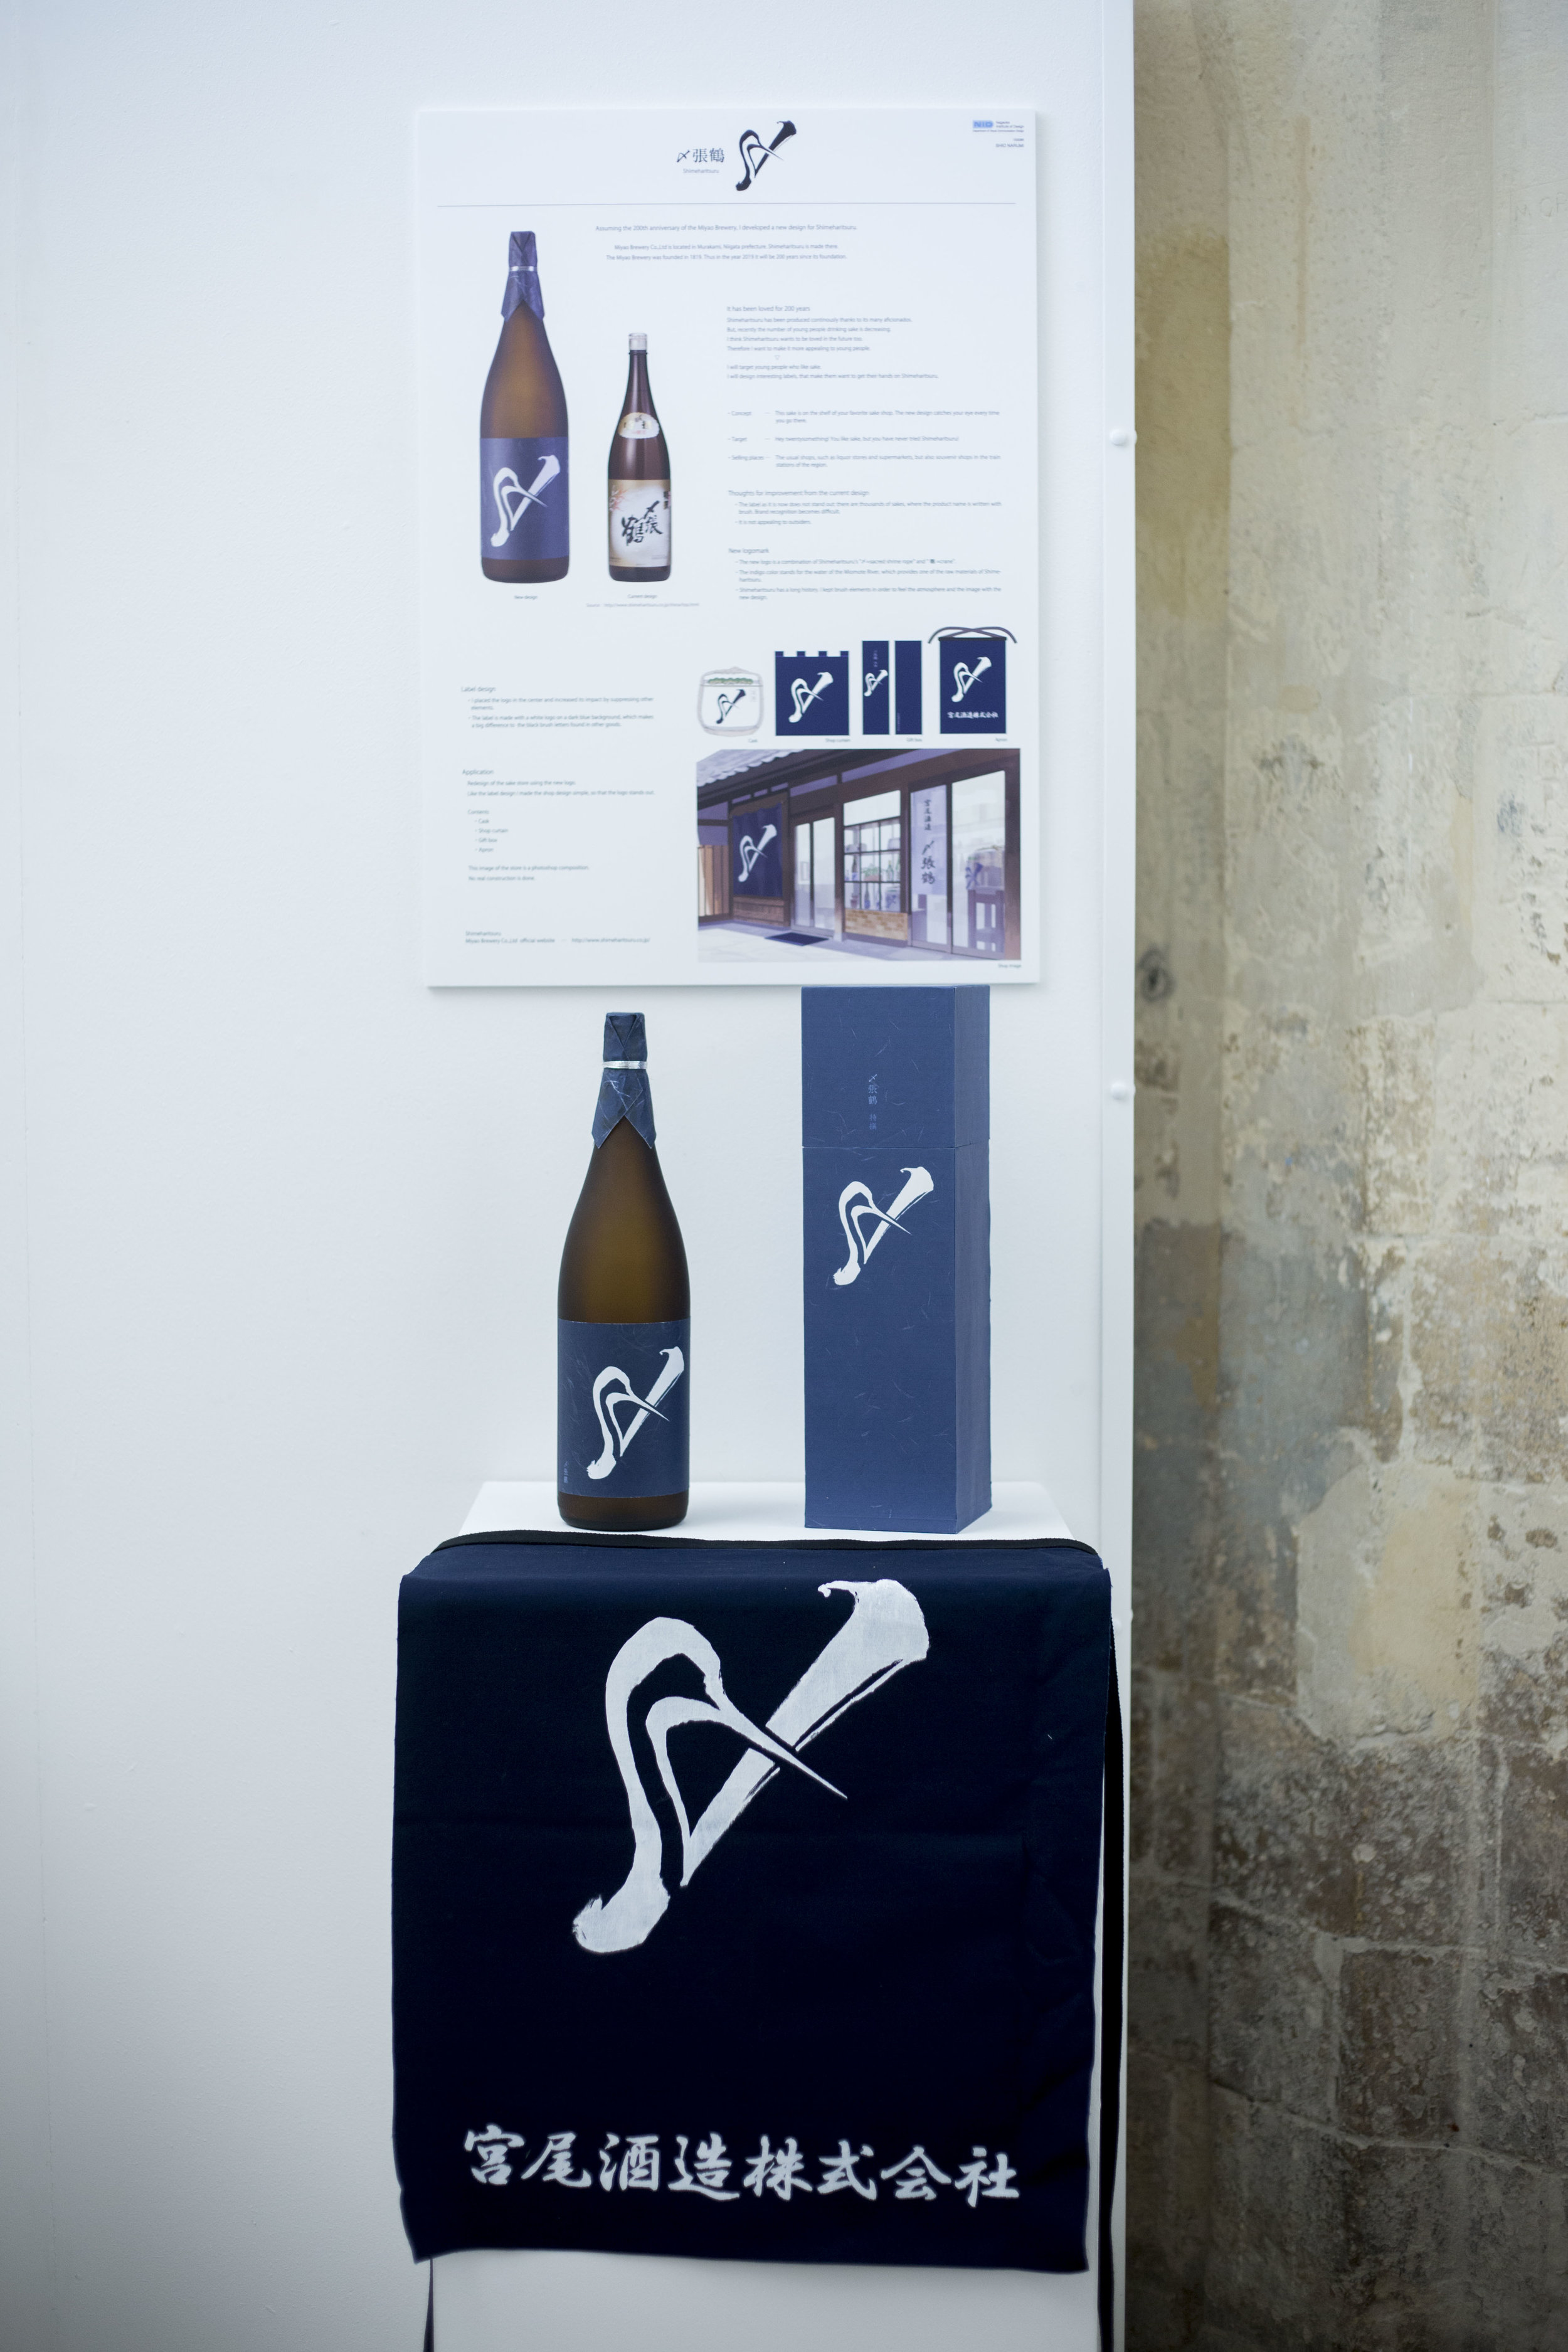 SAKE exhibition in the Crypt_HH027.JPG